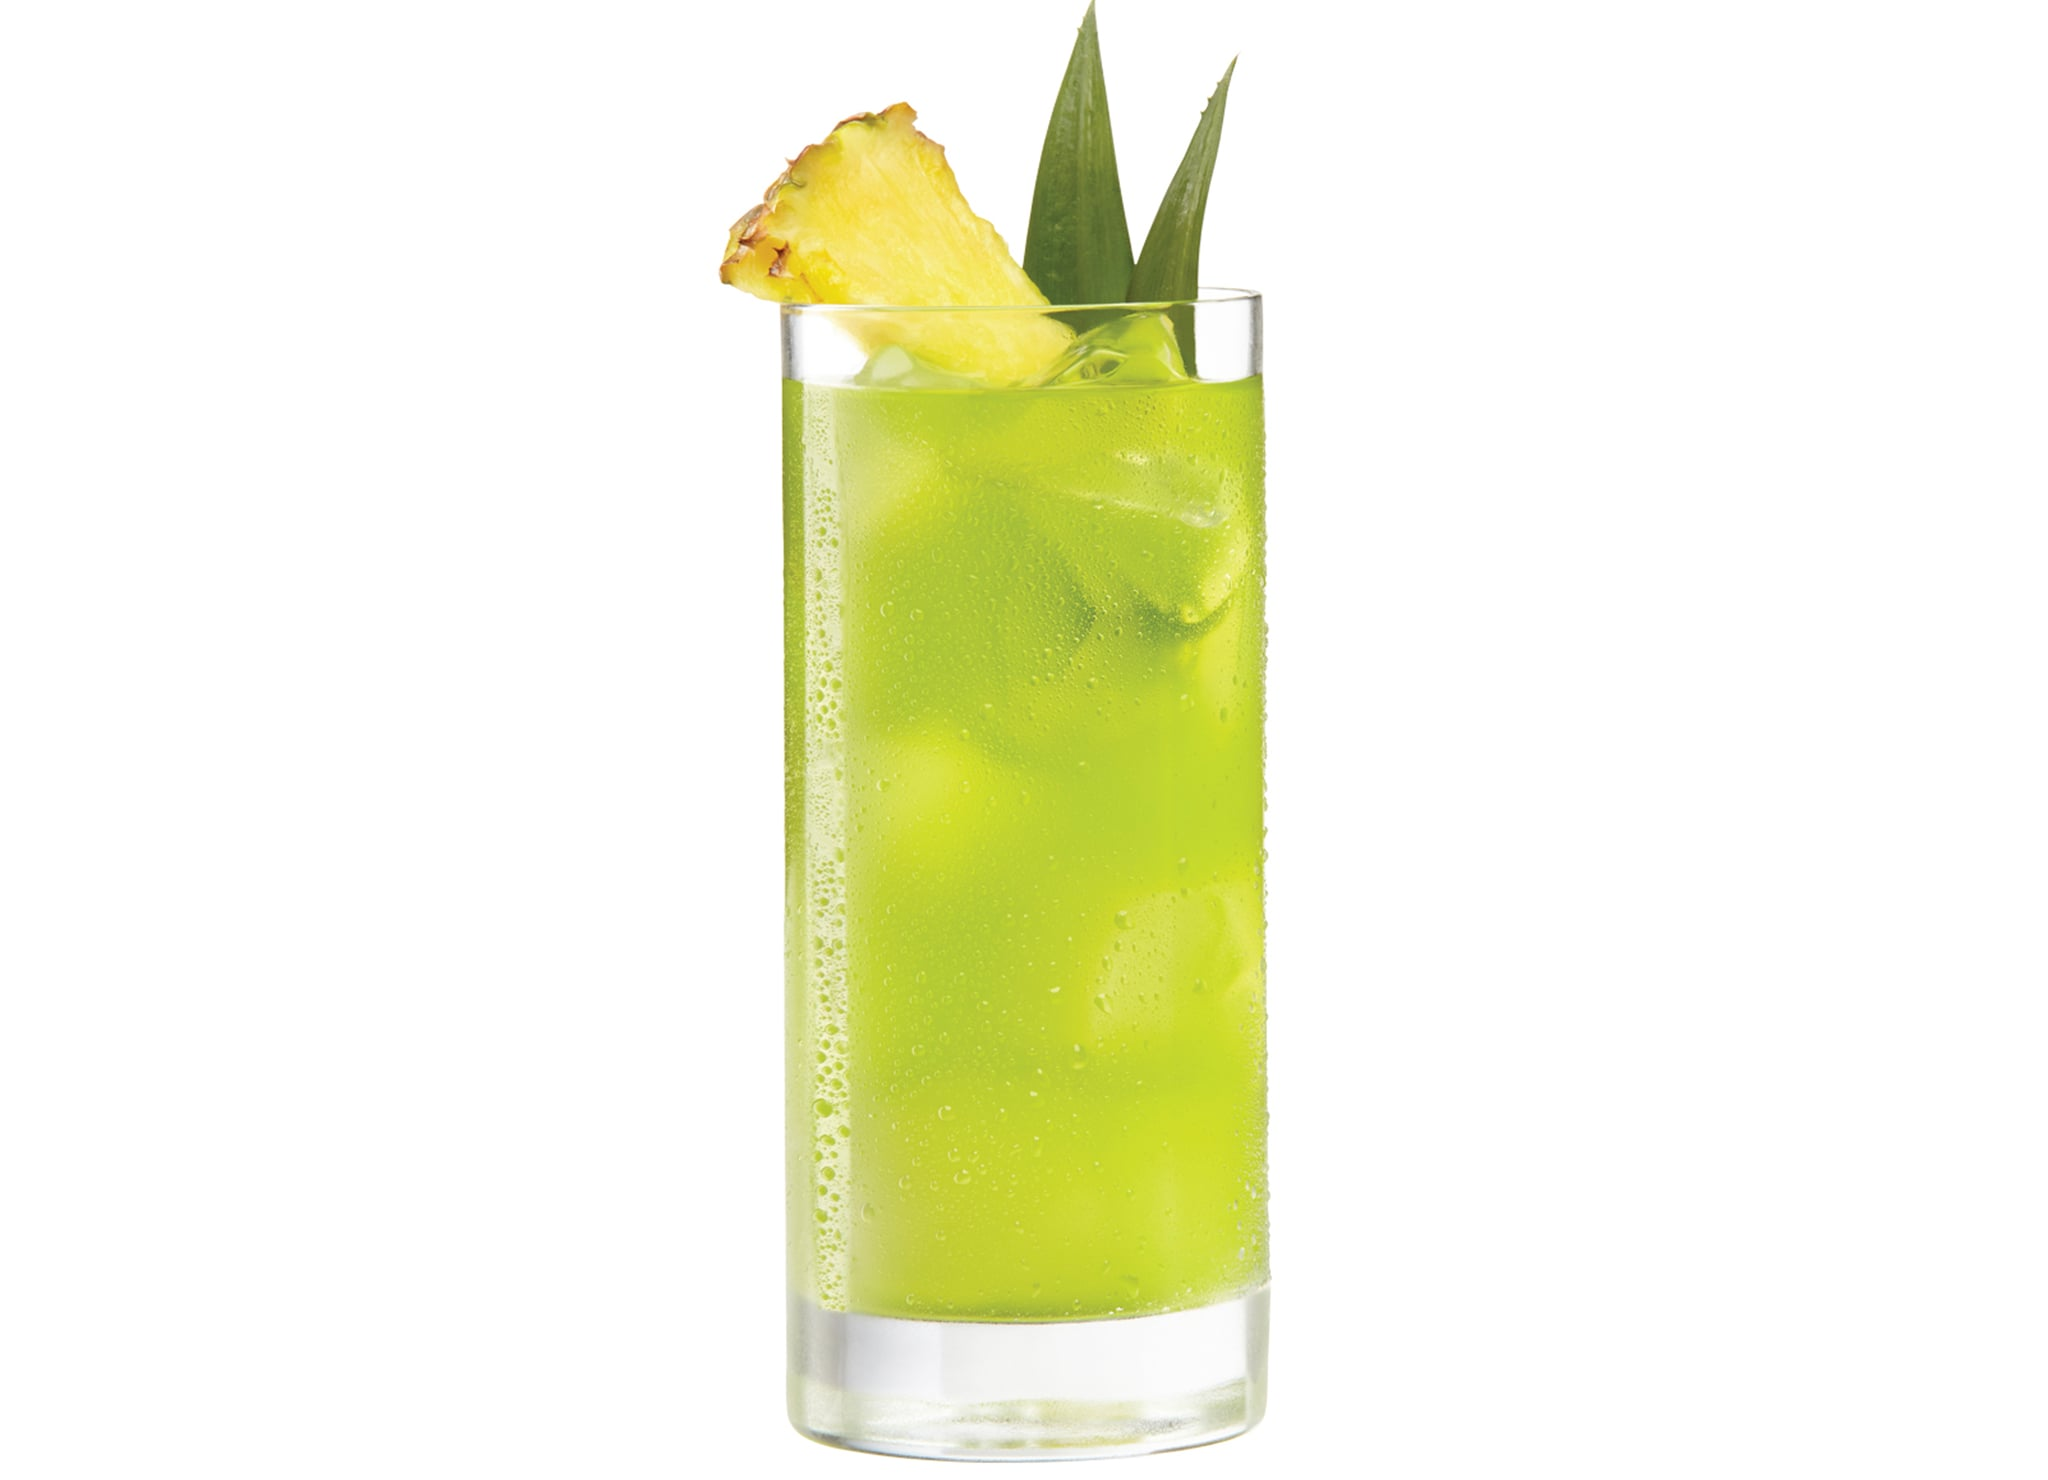 Refreshing Doesn't Even Begin to Describe How Incredible This Summer-Friendly Cocktail Is